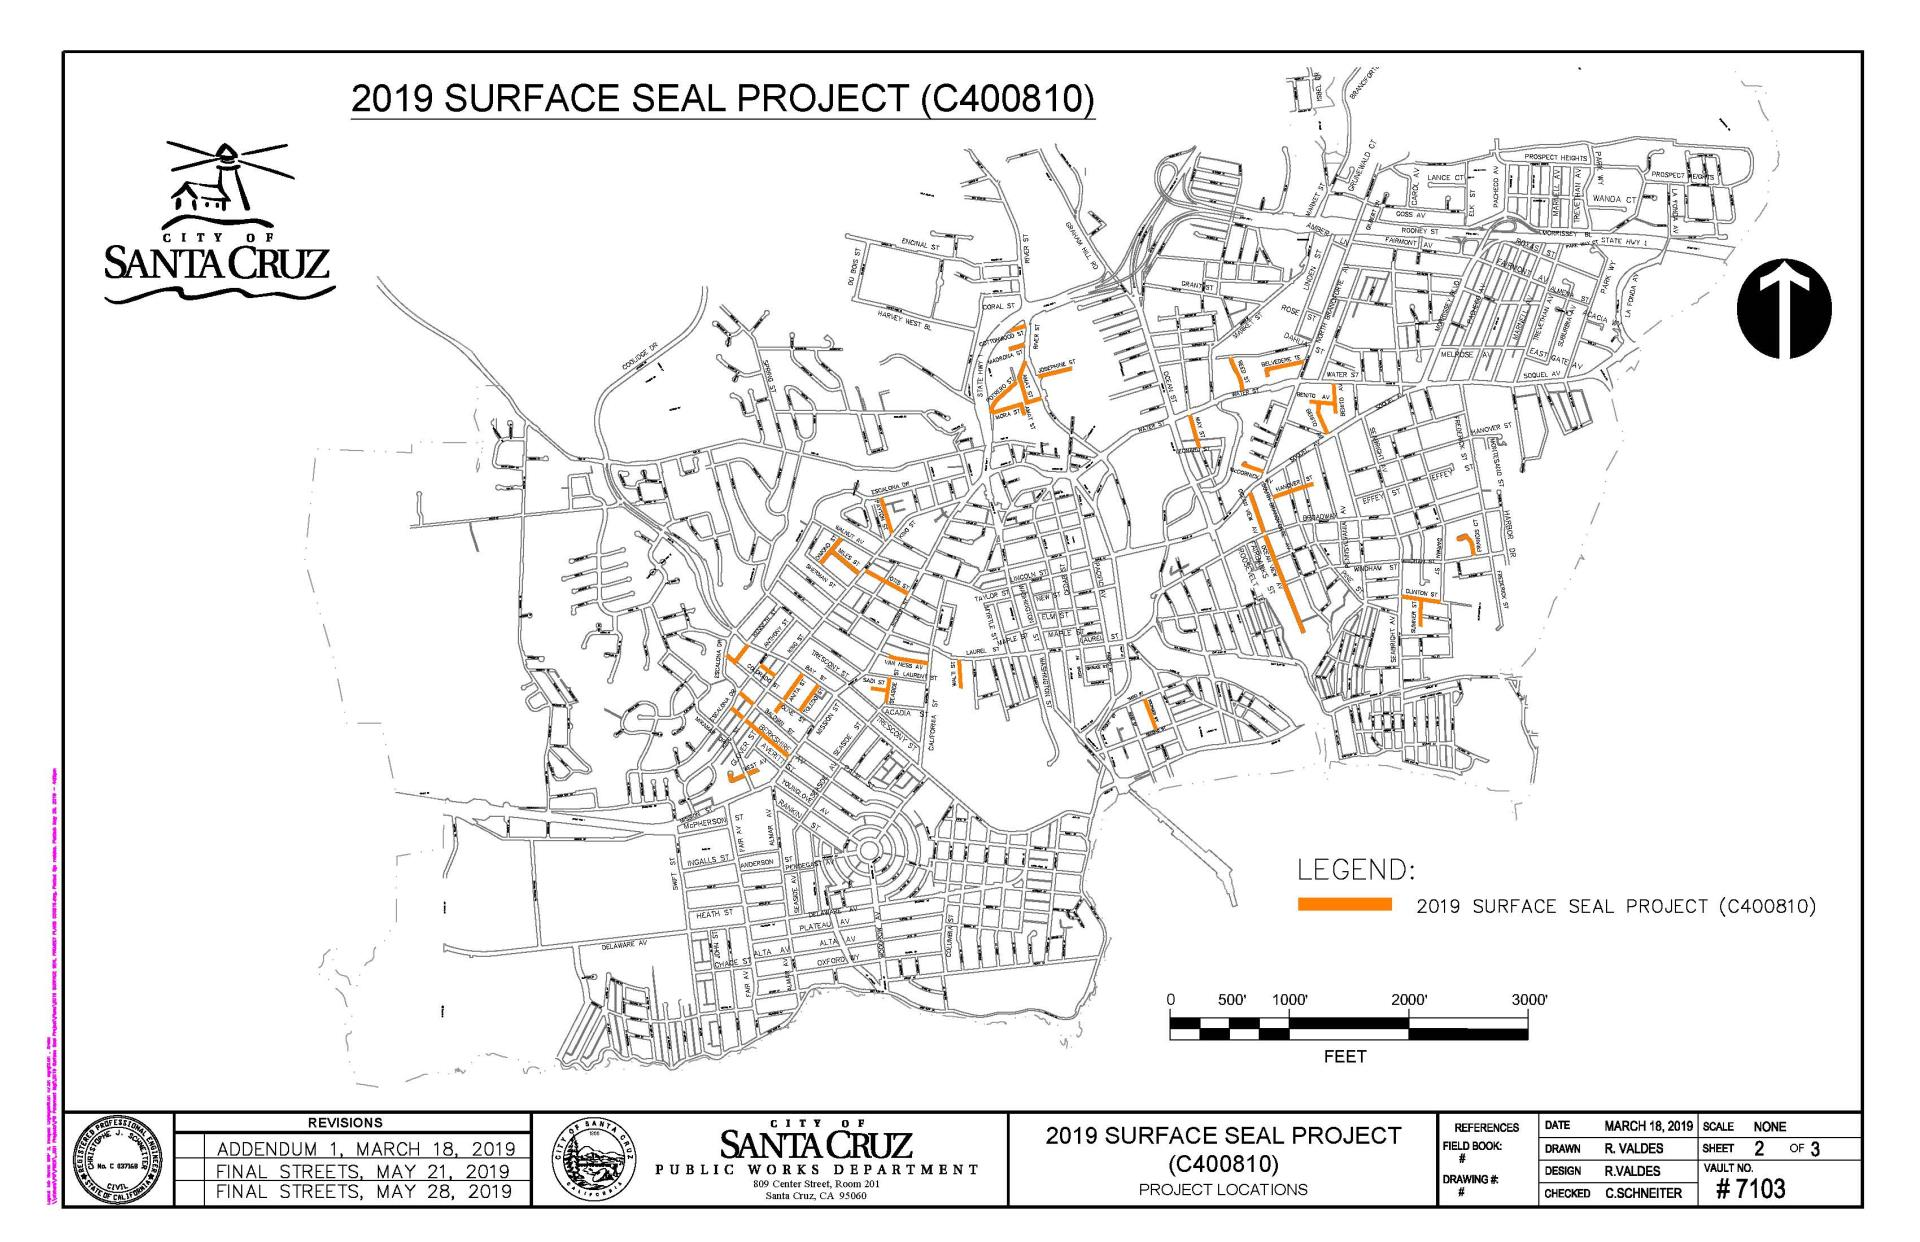 2019 Surface Seal Project Final Streets